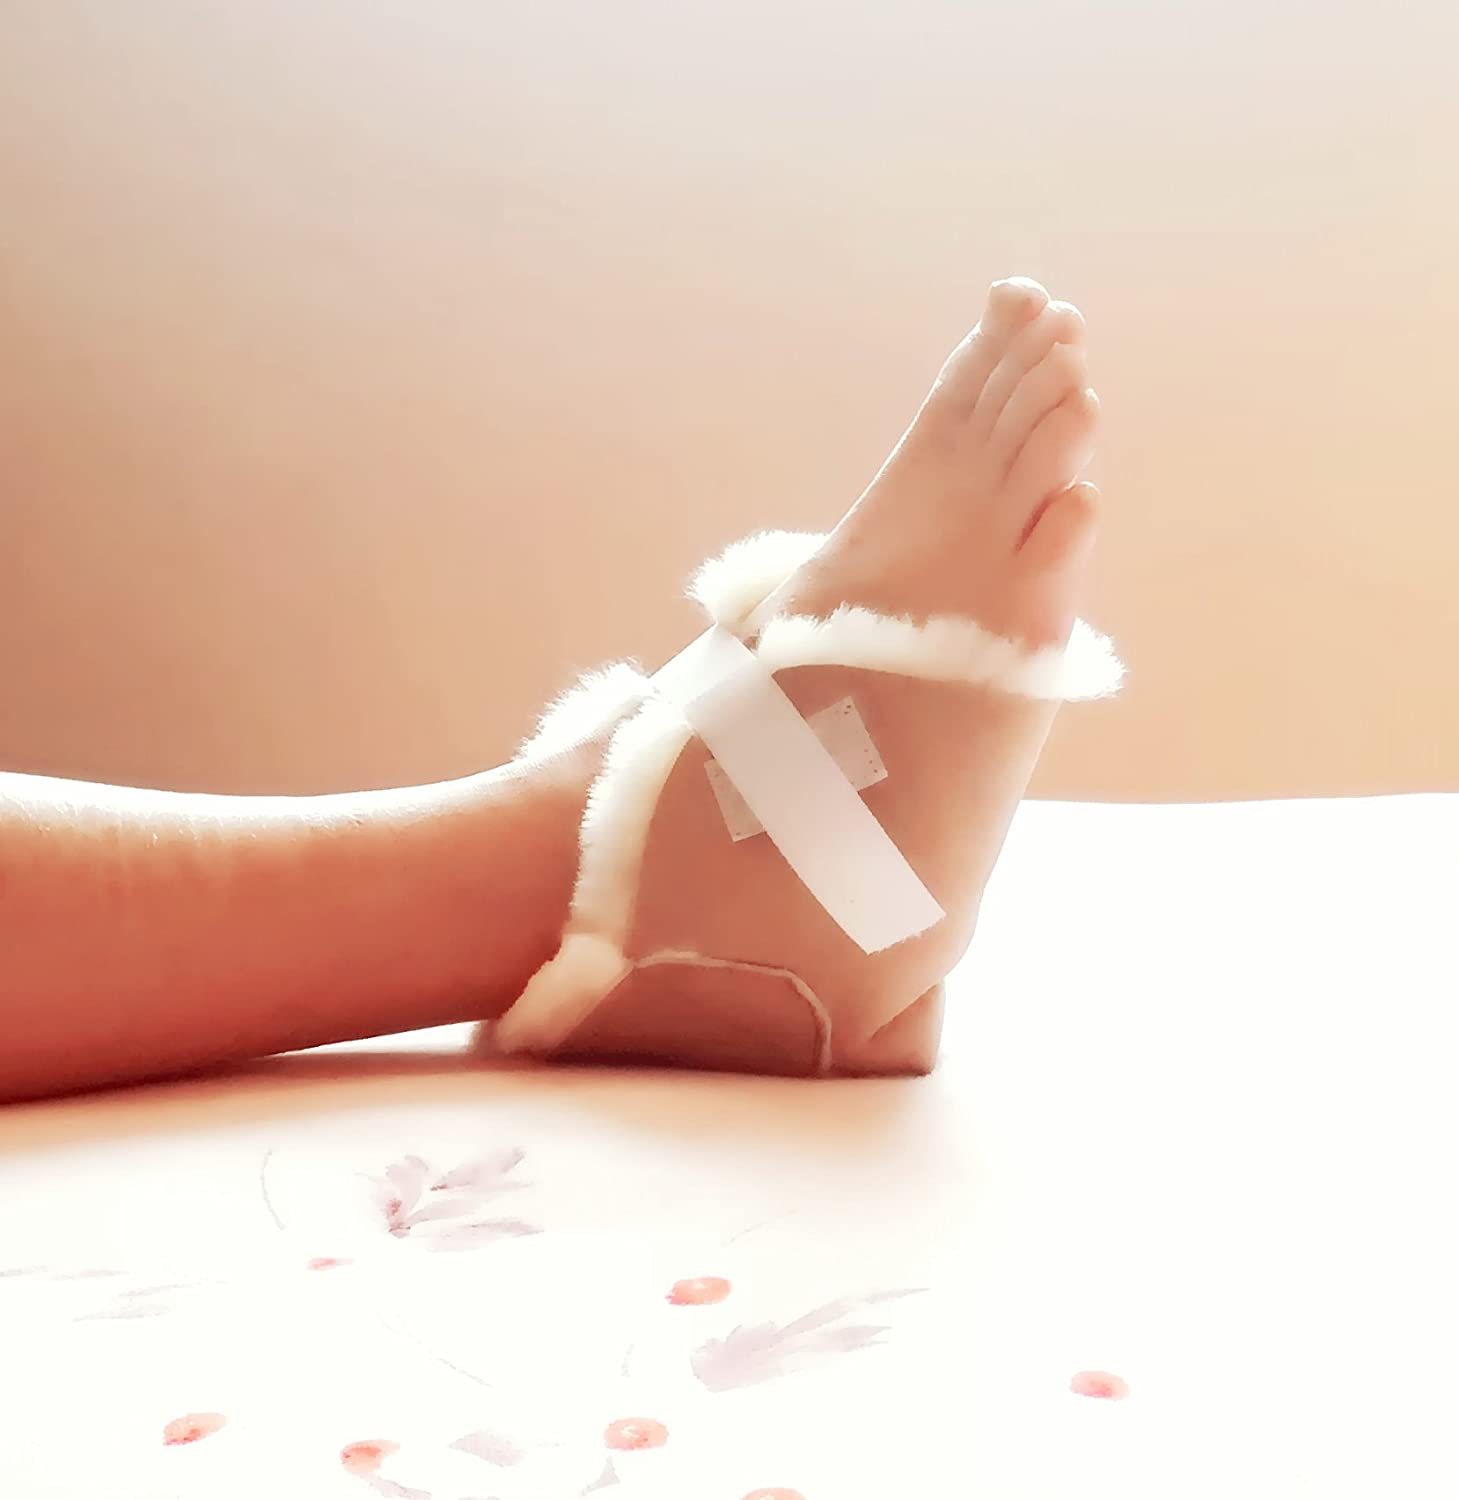 Kenley Heel and Foot Protectors - Sold Individually - Protect Feet, Heels & Elbows from Ulcers, Bed & Pressure Sores - Pain & Injuries Relief Pillows - 100% Genuine Lambskin Cushions Pads